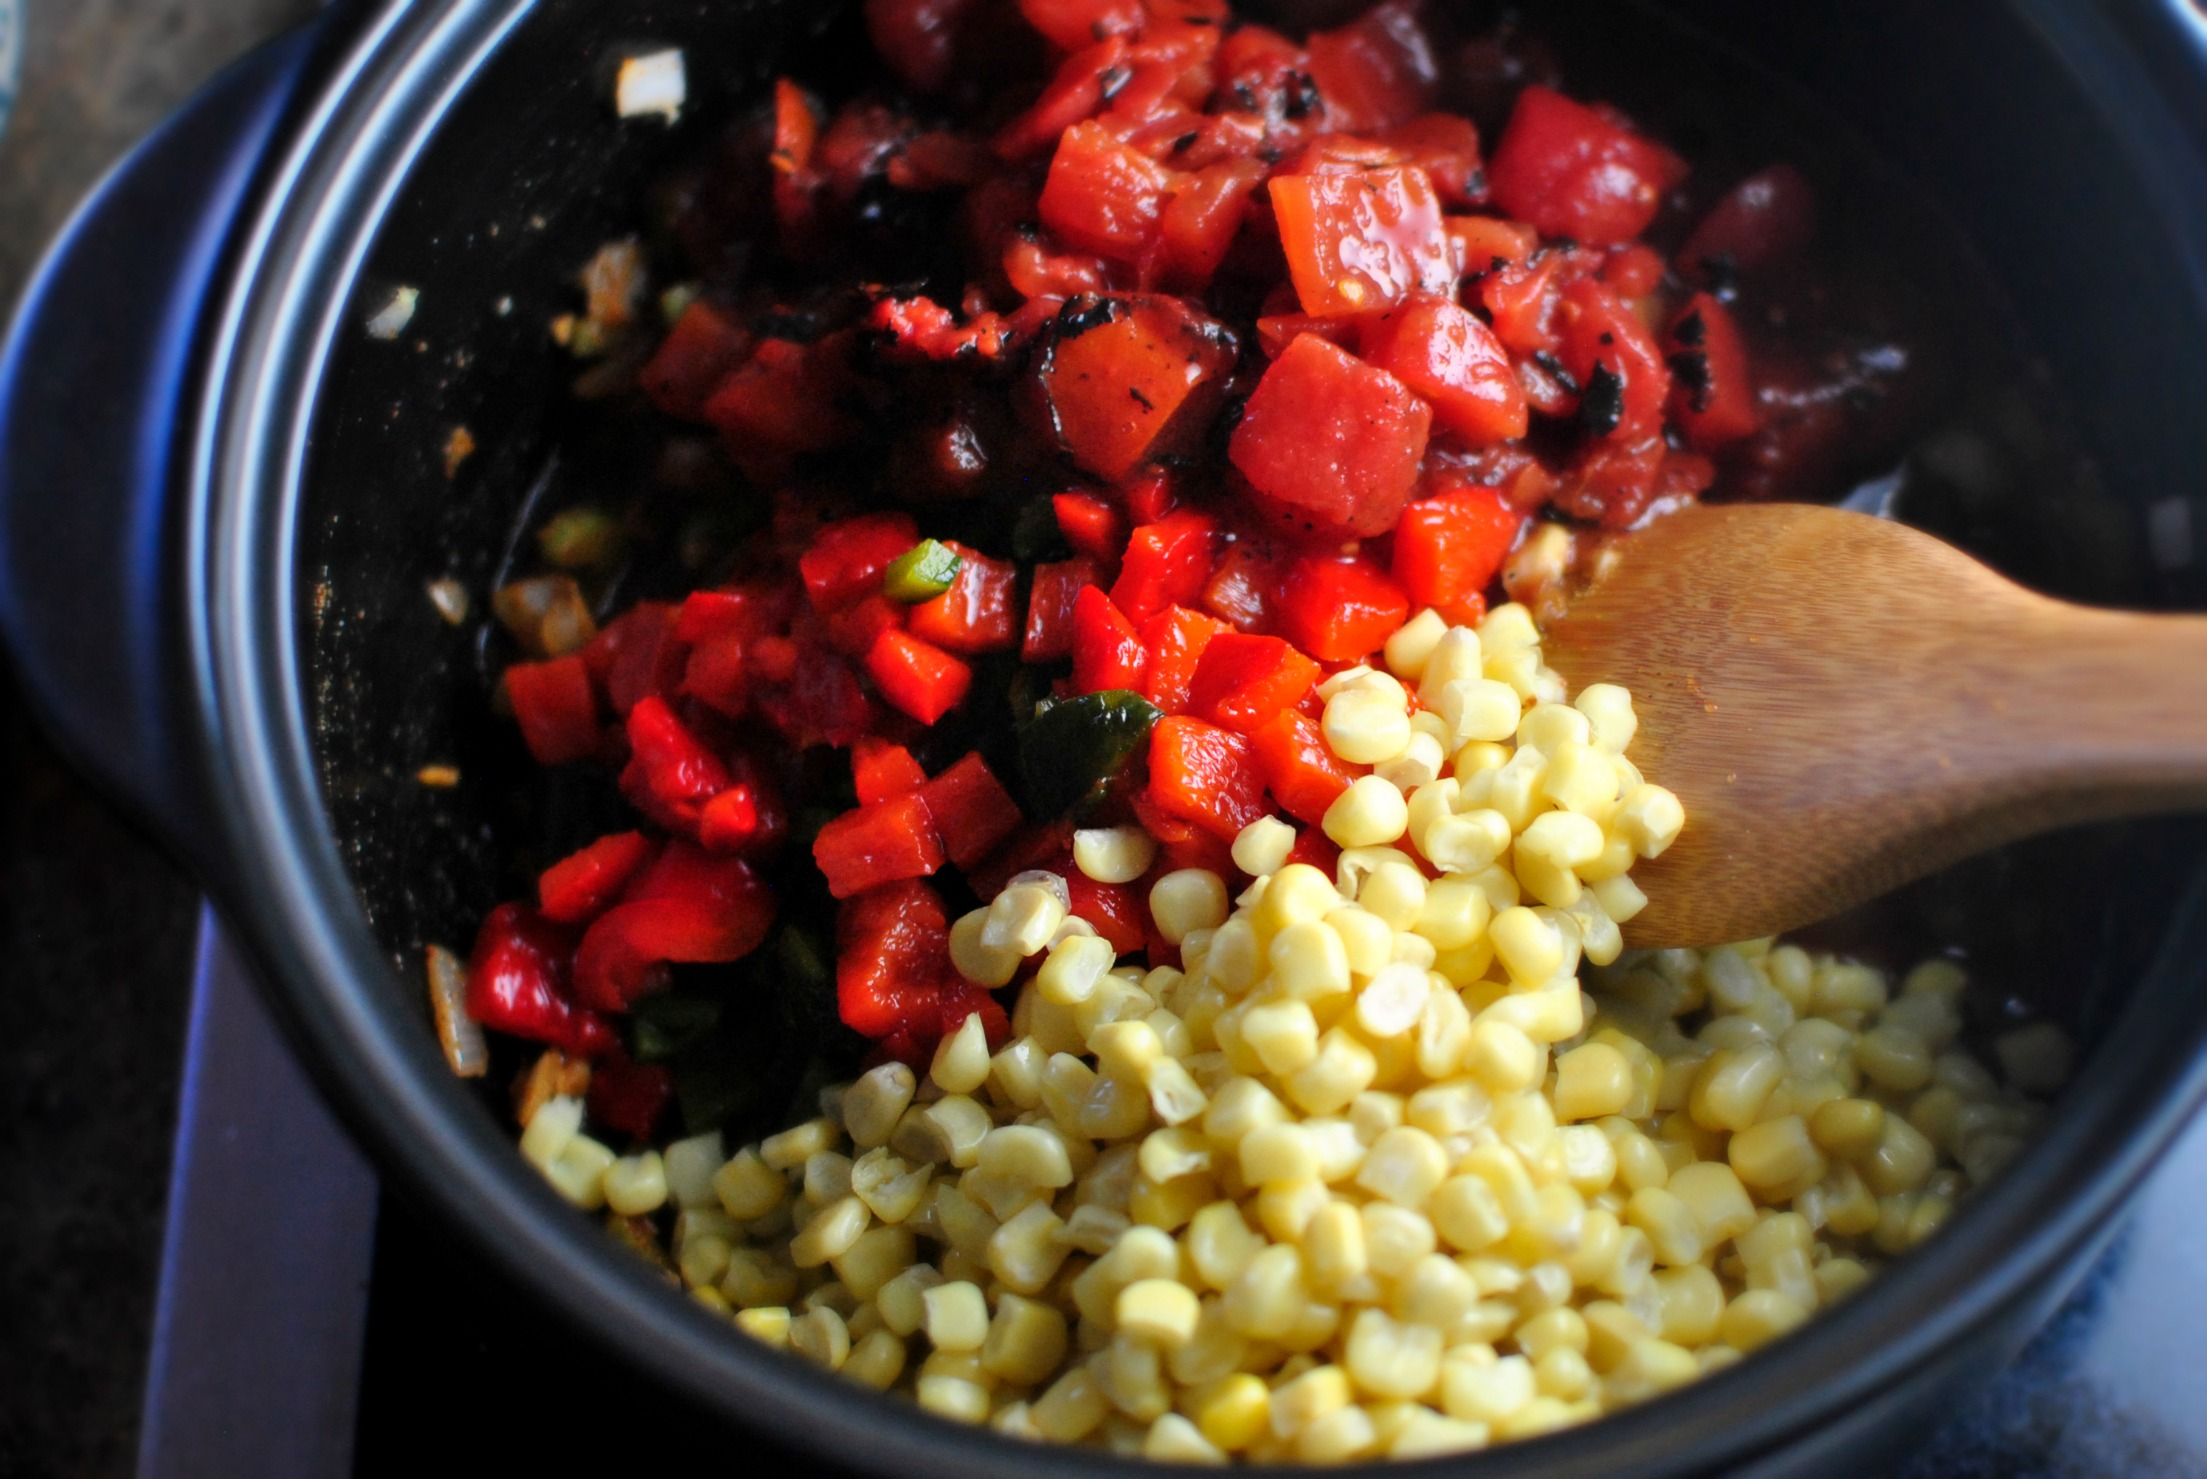 Next add in the fire-roasted tomatoes, peppers, poblano and sweet corn ...